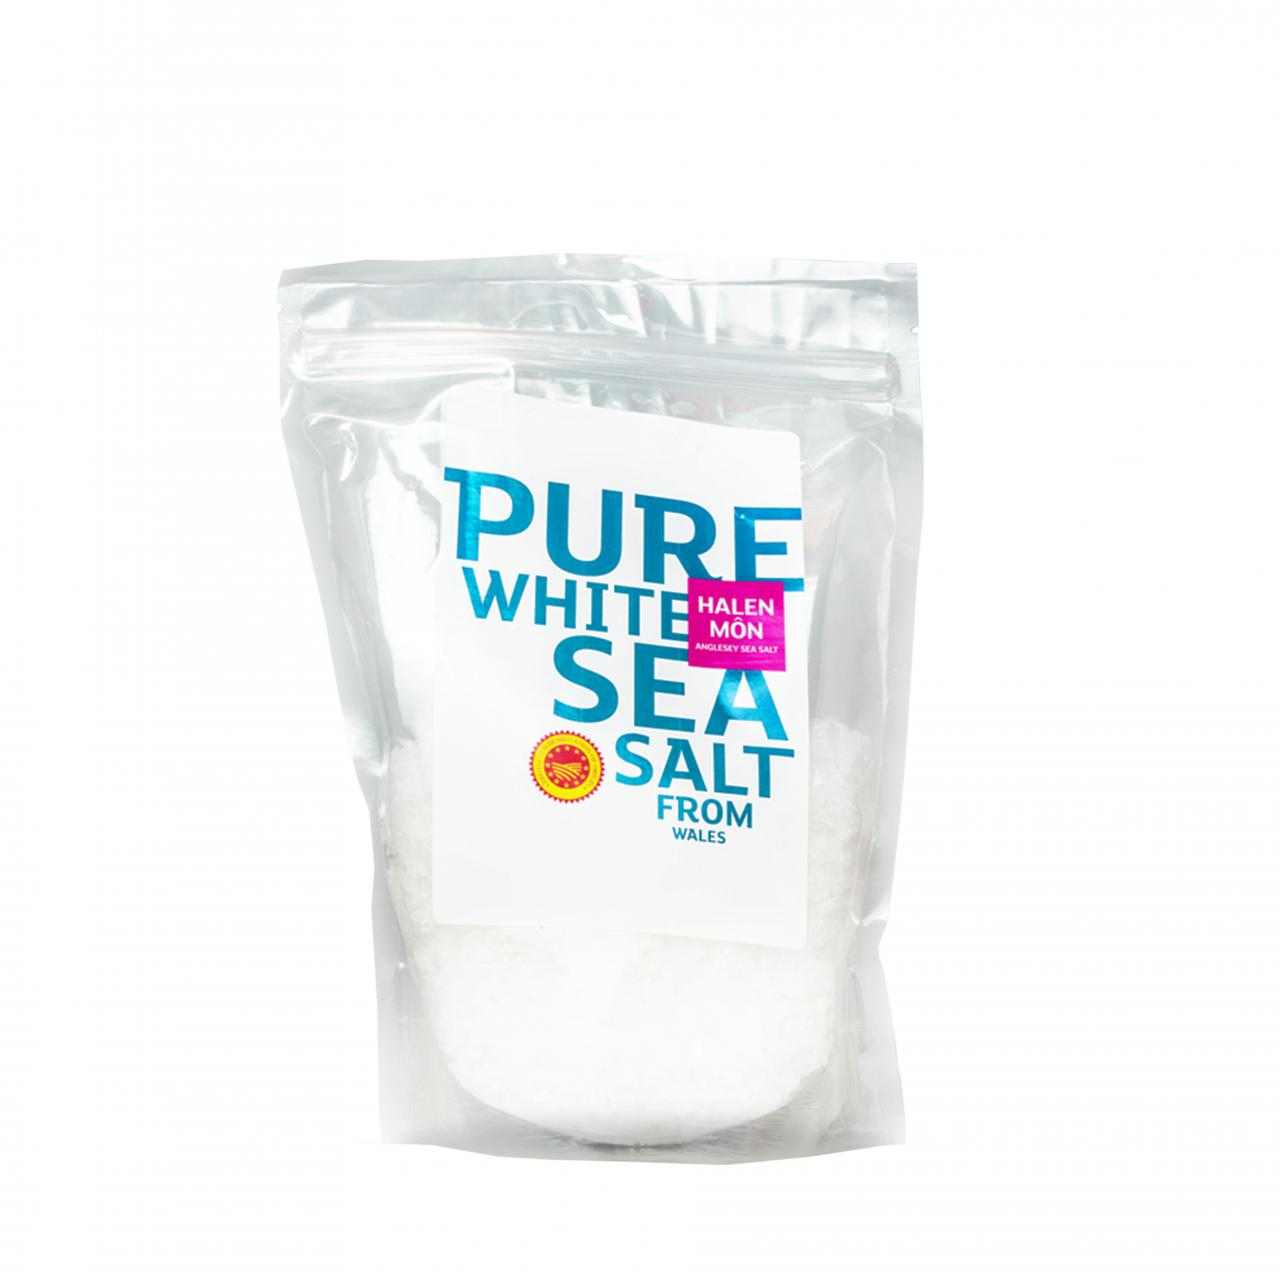 Pure White Sea Salt (500g)